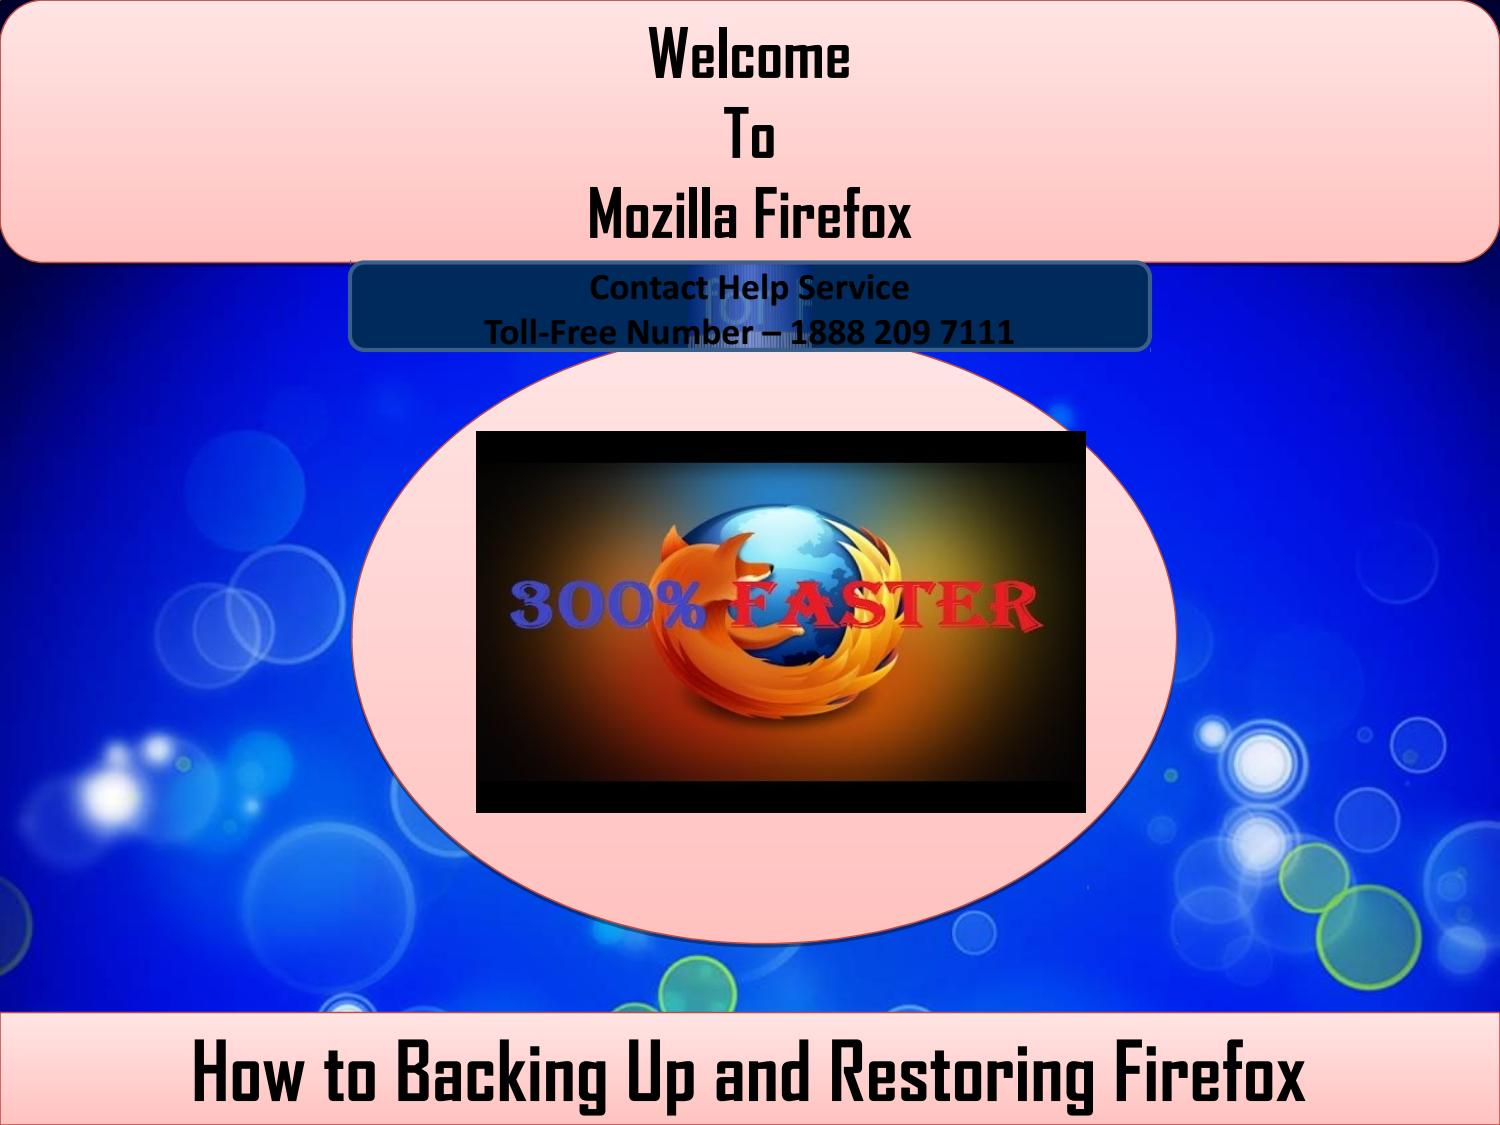 Mozilla firefox tech support number 18882097111 by smith